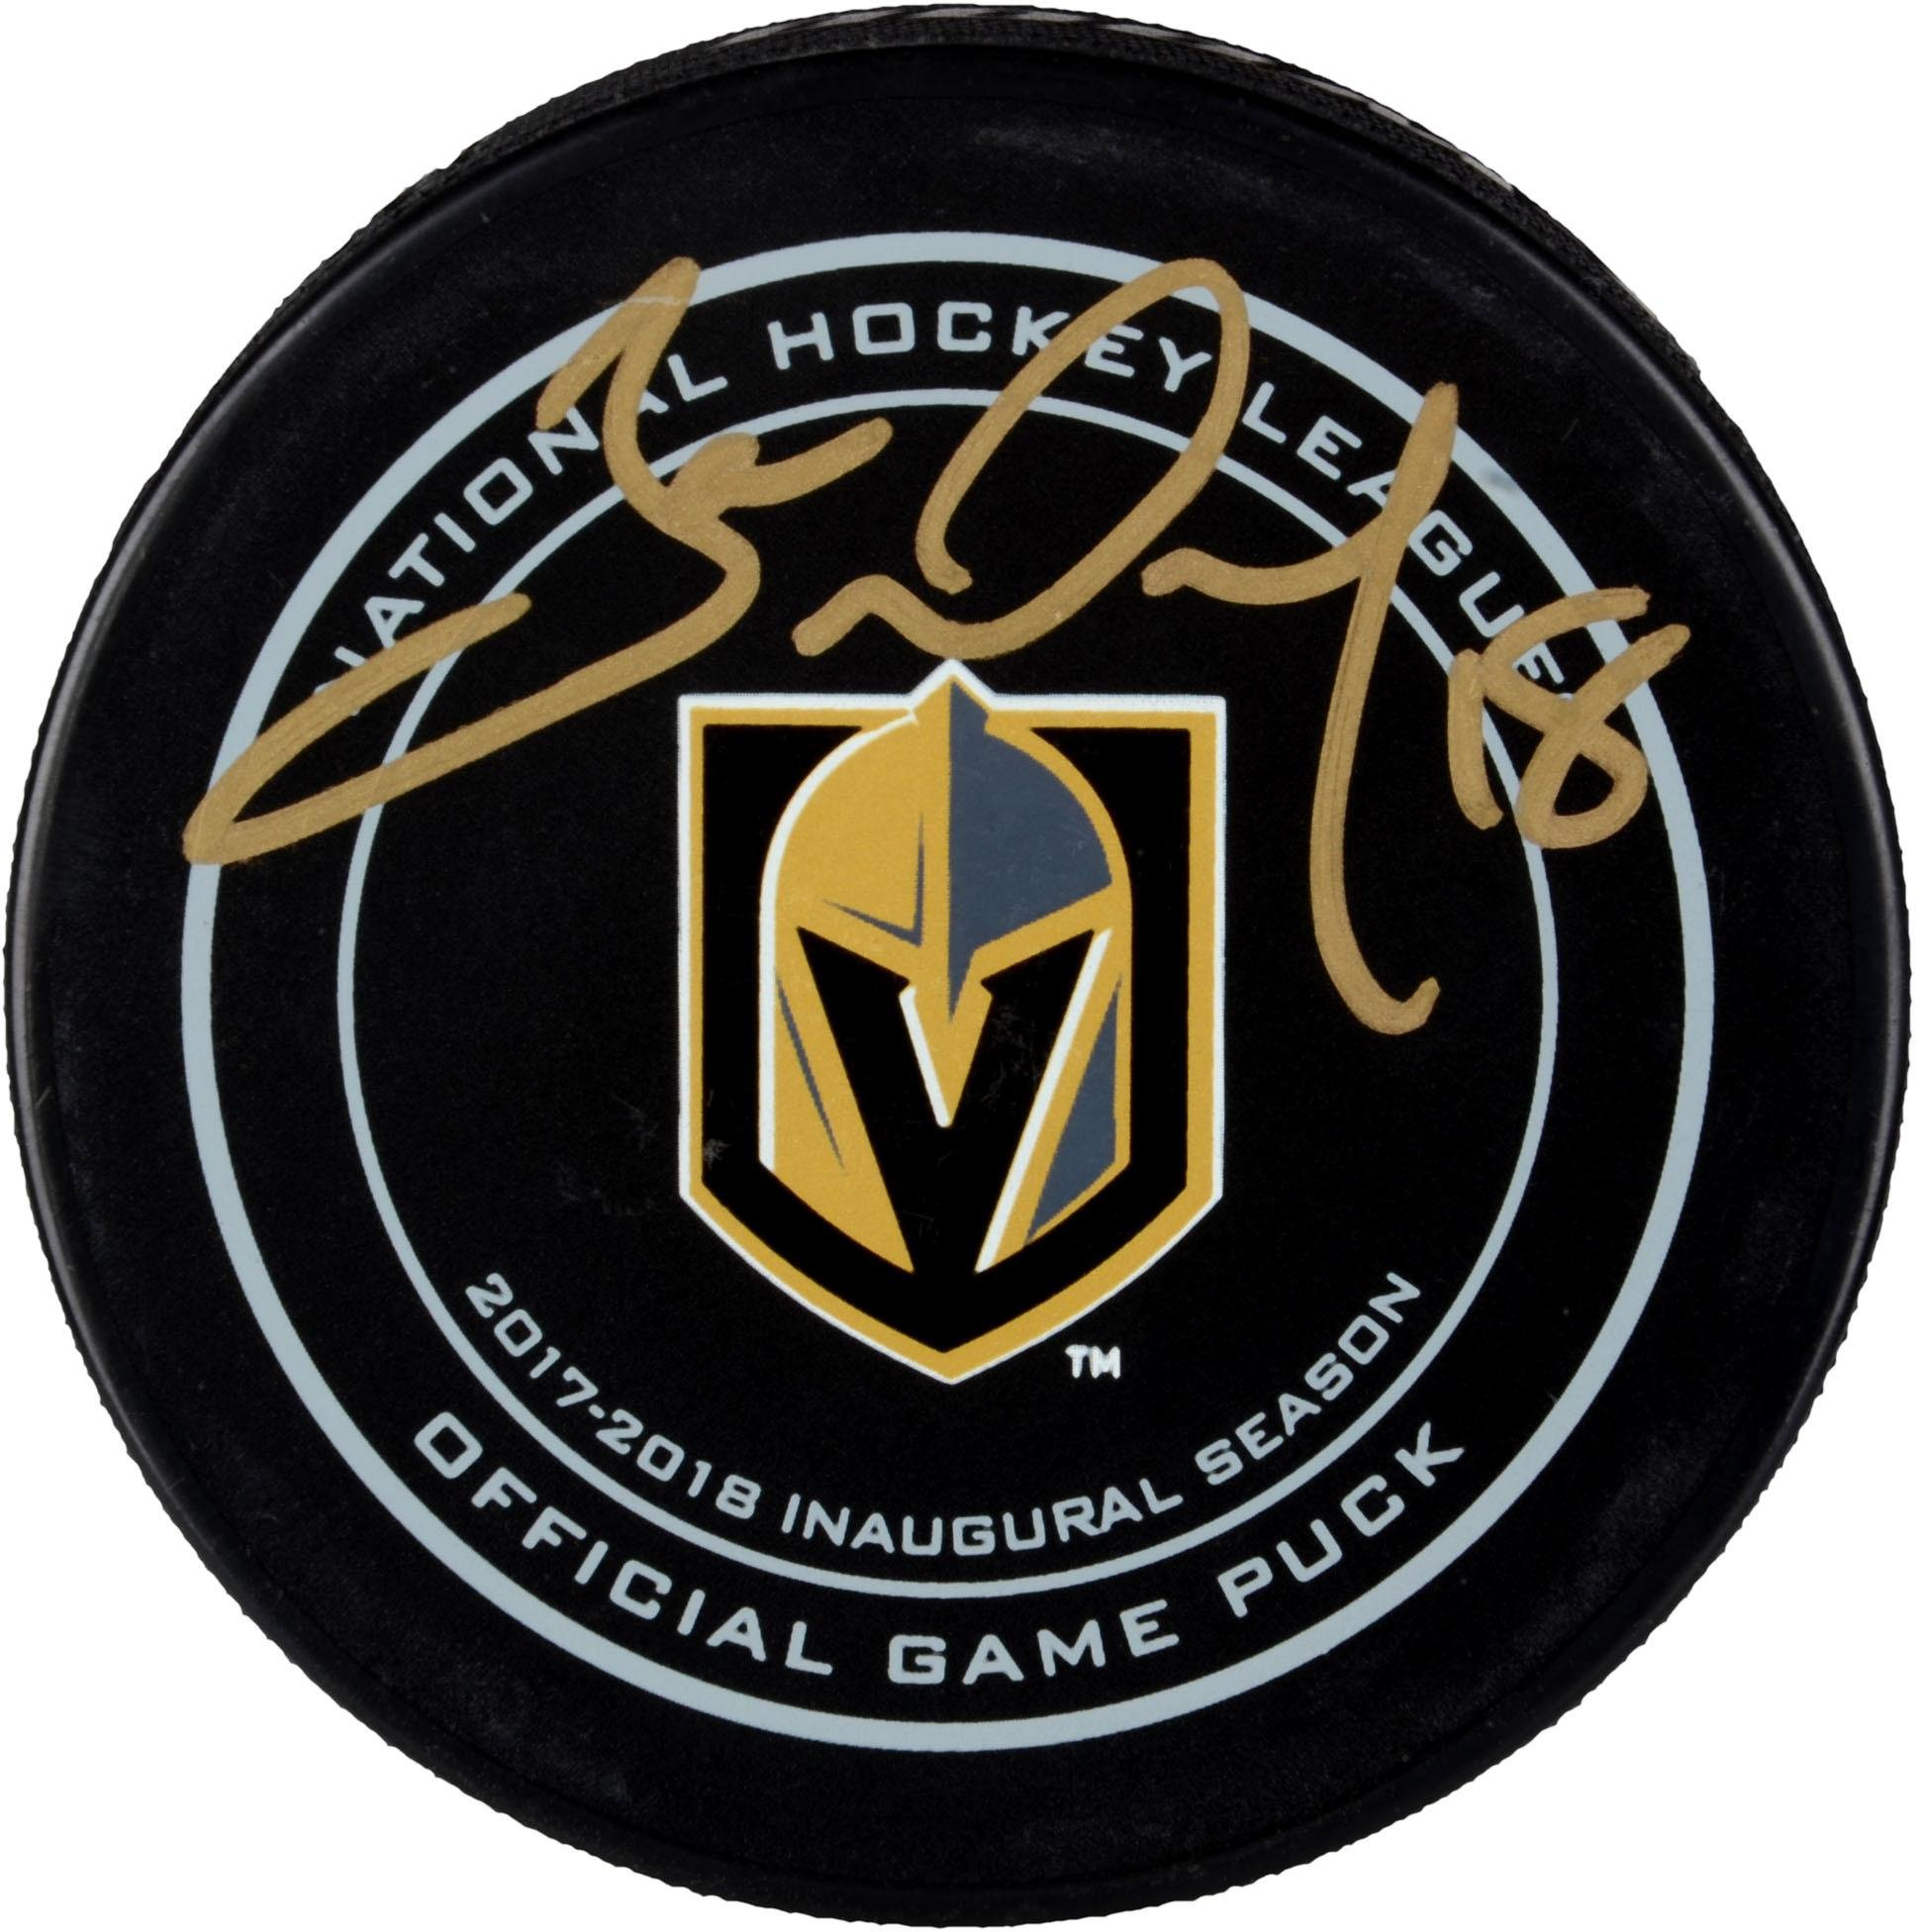 James Neal Vegas Golden Knights Autographed Official Game Puck Fanatics Authentic Certified Autographed NHL Pucks